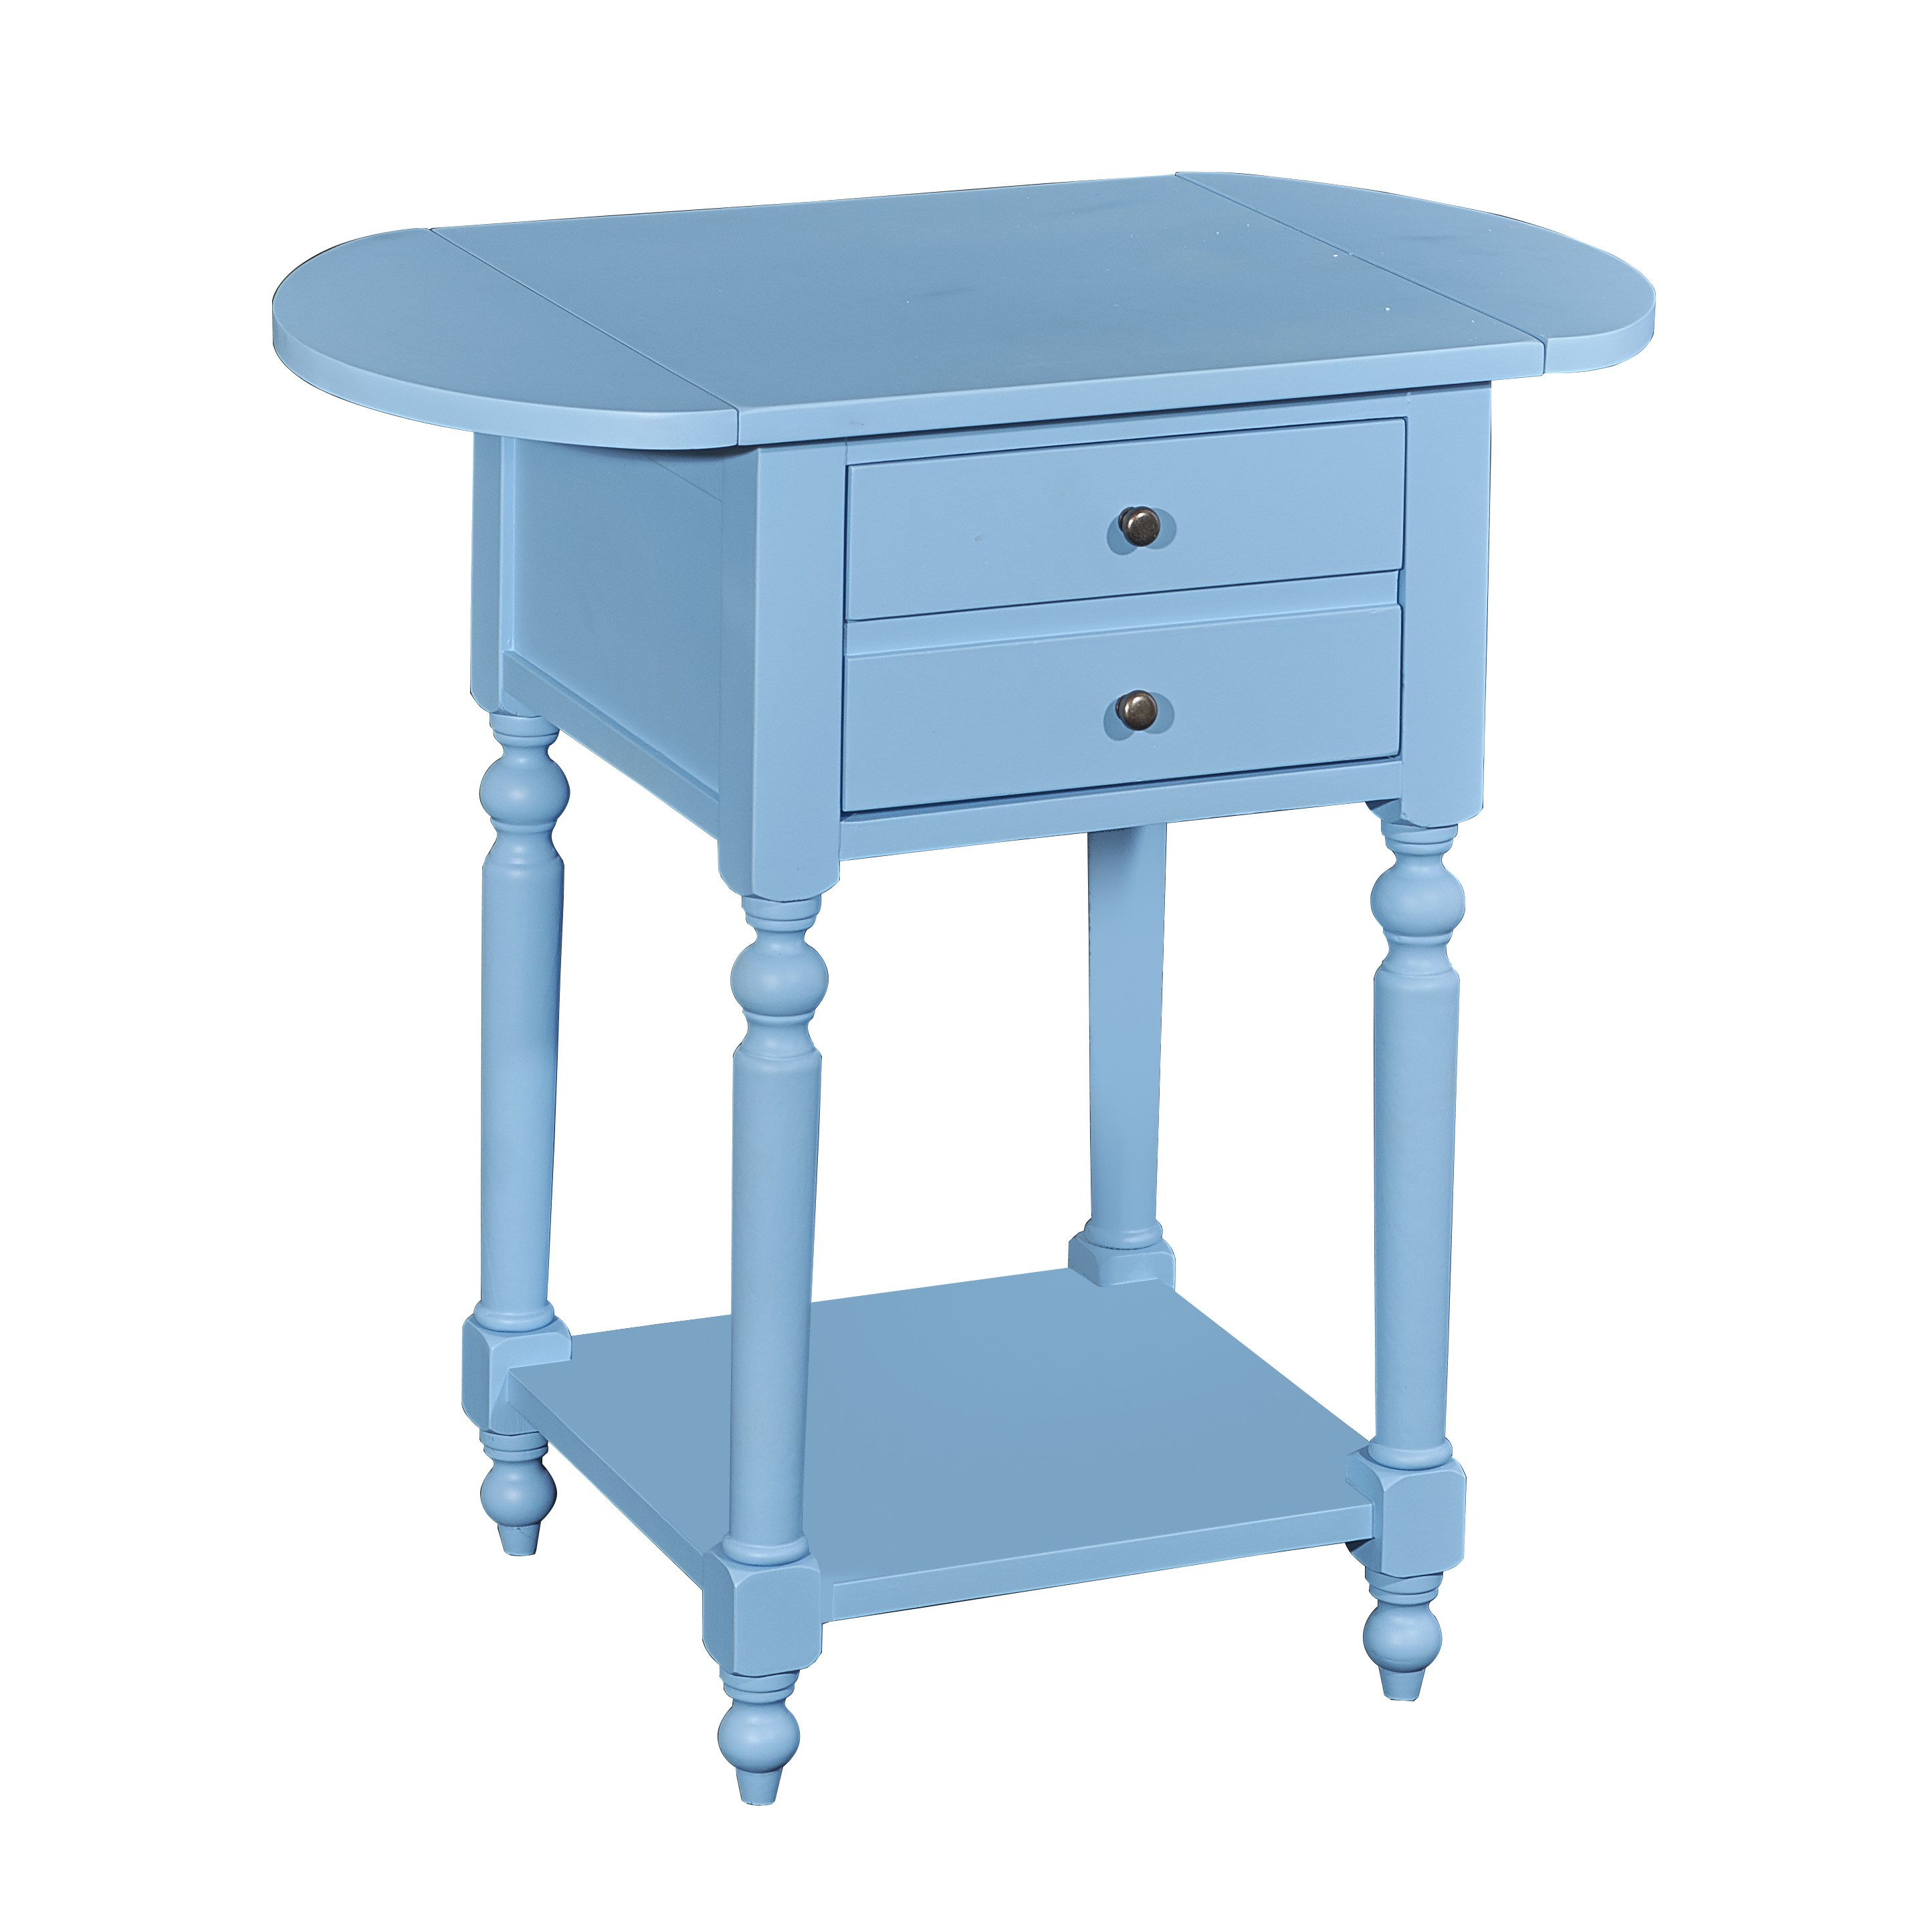 shiloh ocean blue accent table with dropleaf free shipping today teal small designer coffee tables target lounge chairs white drop leaf demilune console bronze glass hammered